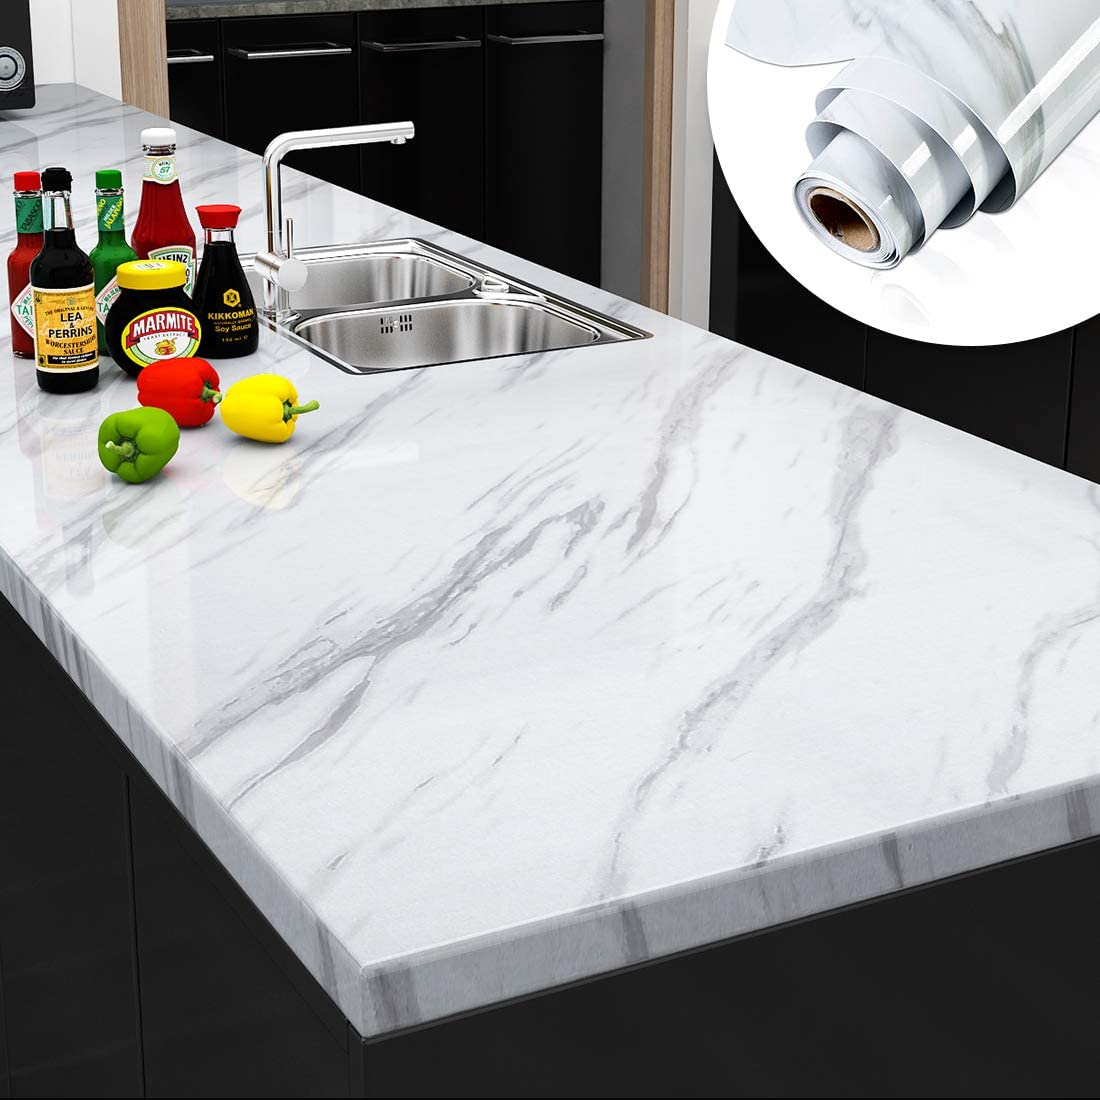 Yenhome Large Size 30x118 inches Marble White Contact Paper Counter Top  Covers Peel and Stick Wallpaper Kitchen Wallpaper Adhesive Removable  Wallpaper Waterproof Countertop Contact Paper for Cabinets - - Amazon.com